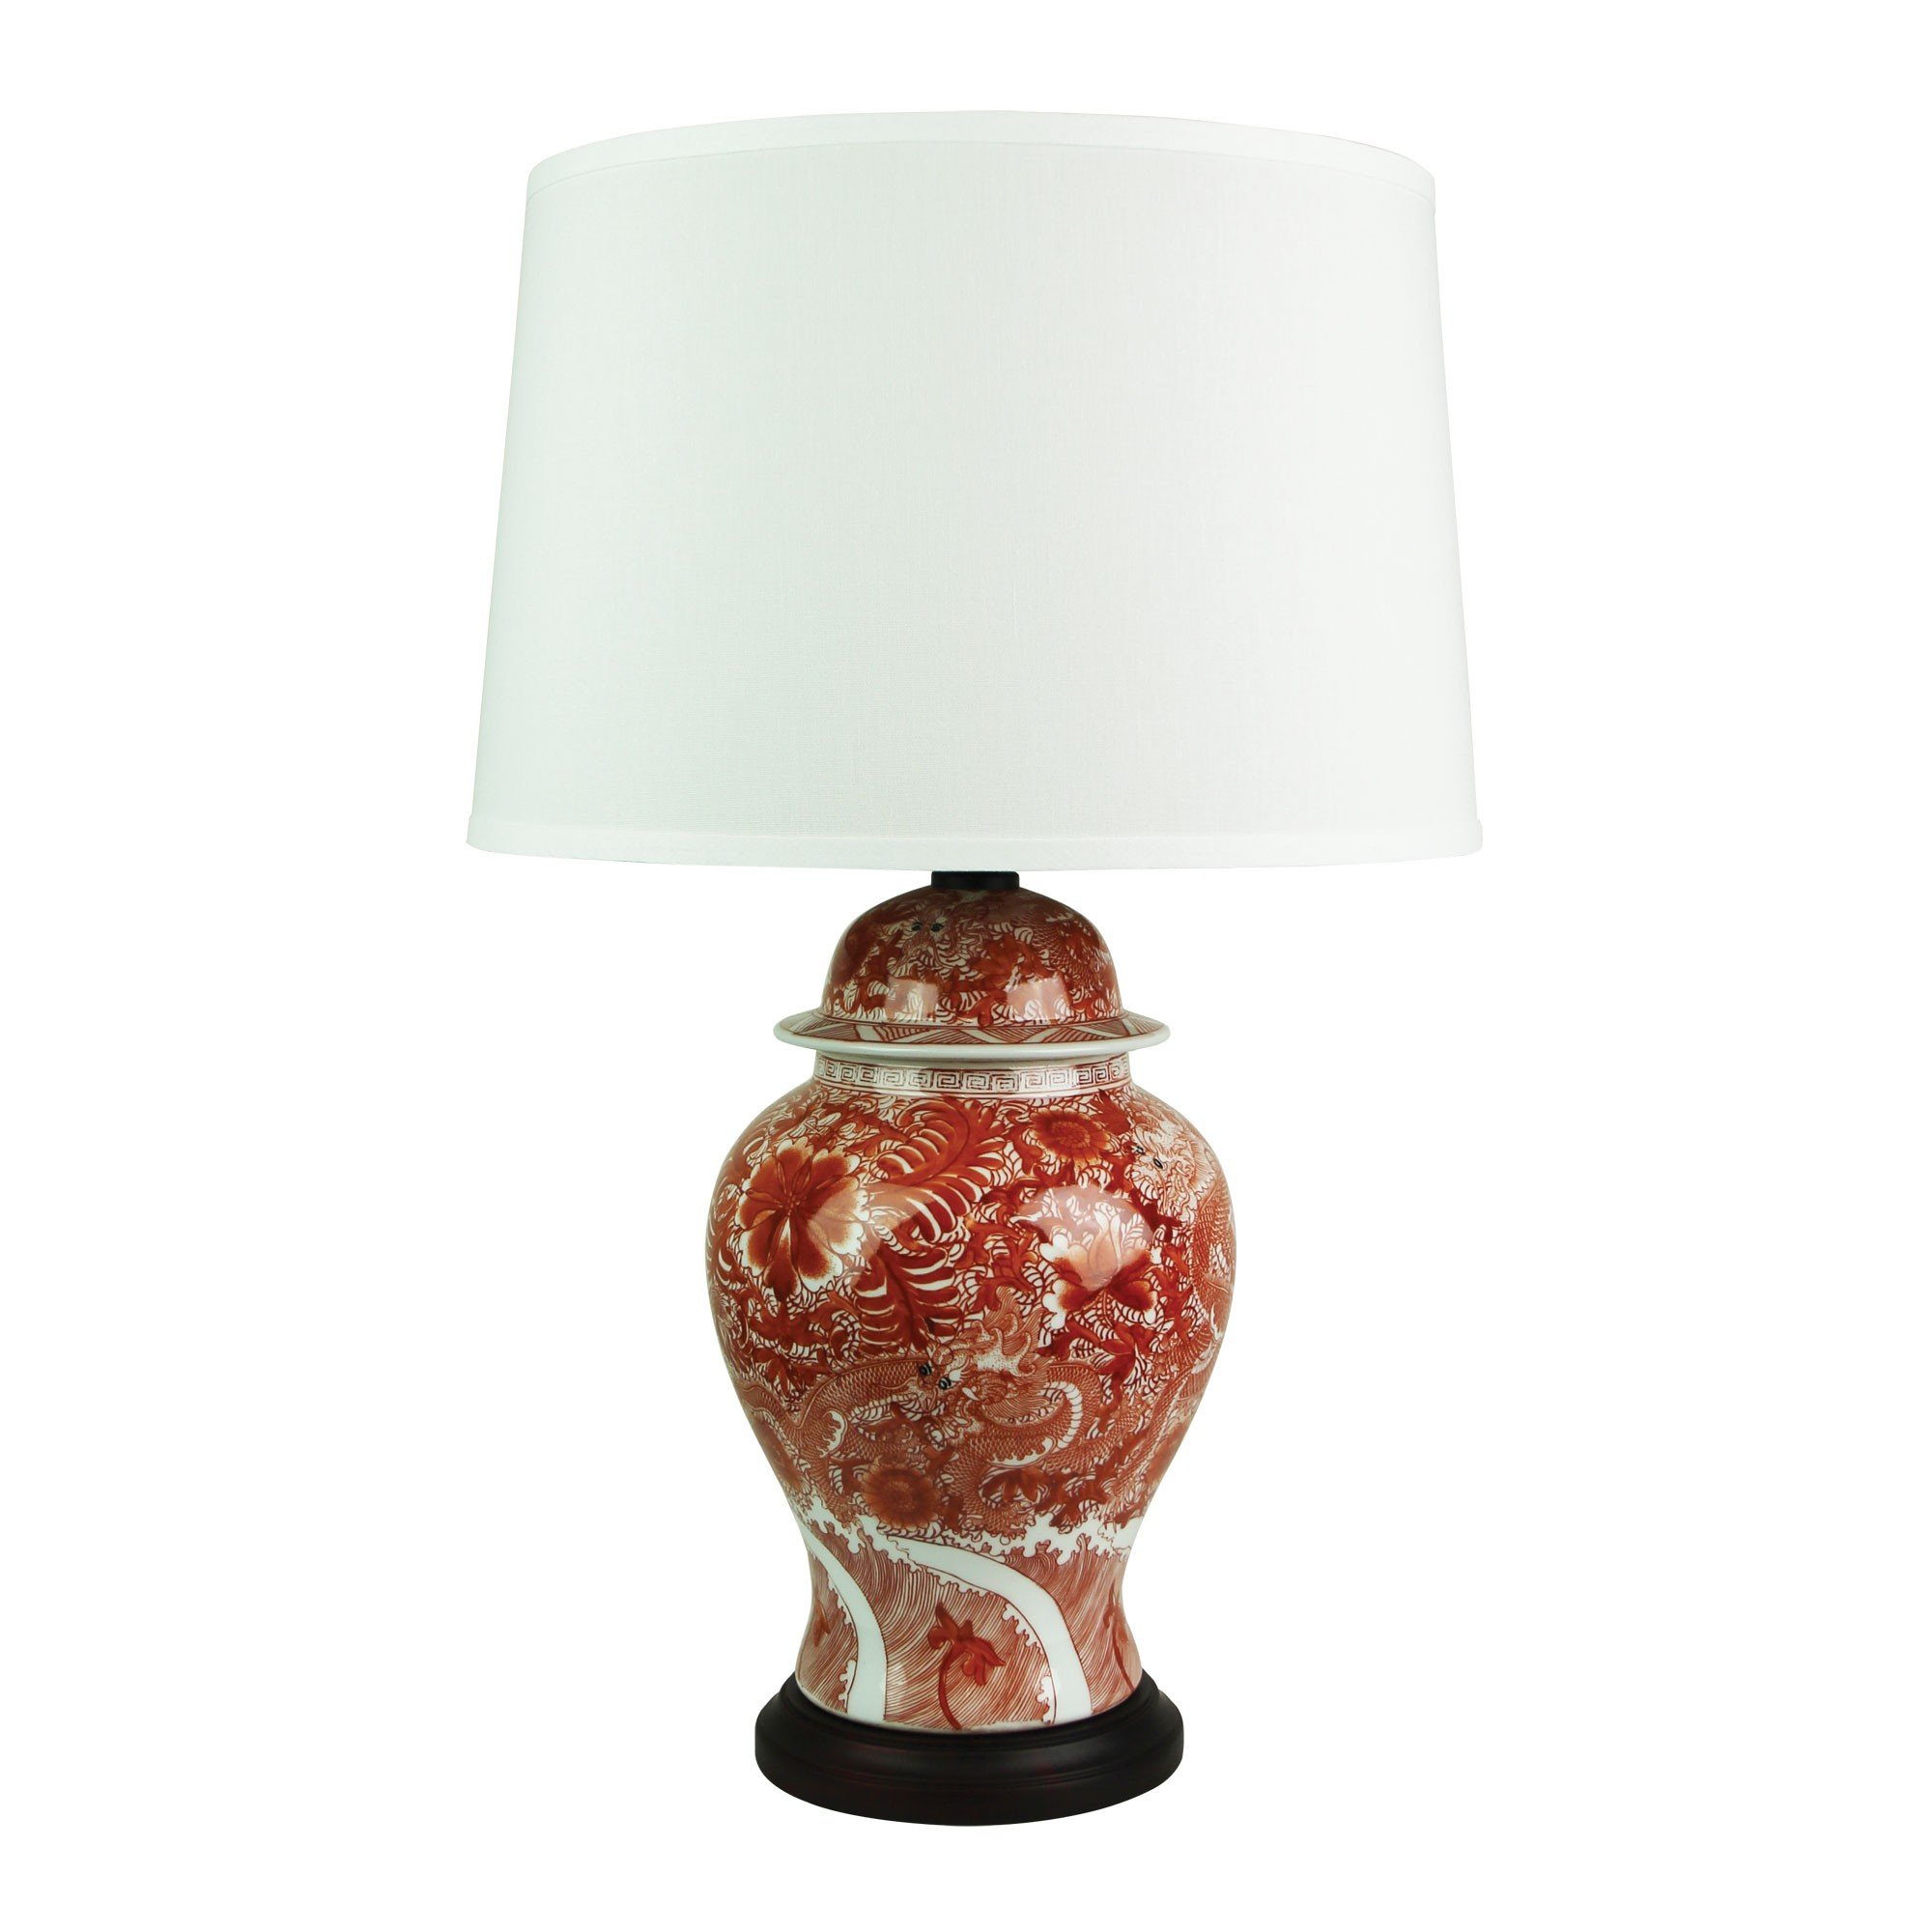 Longwei Hand Painted Ceramic Base Table Lamp